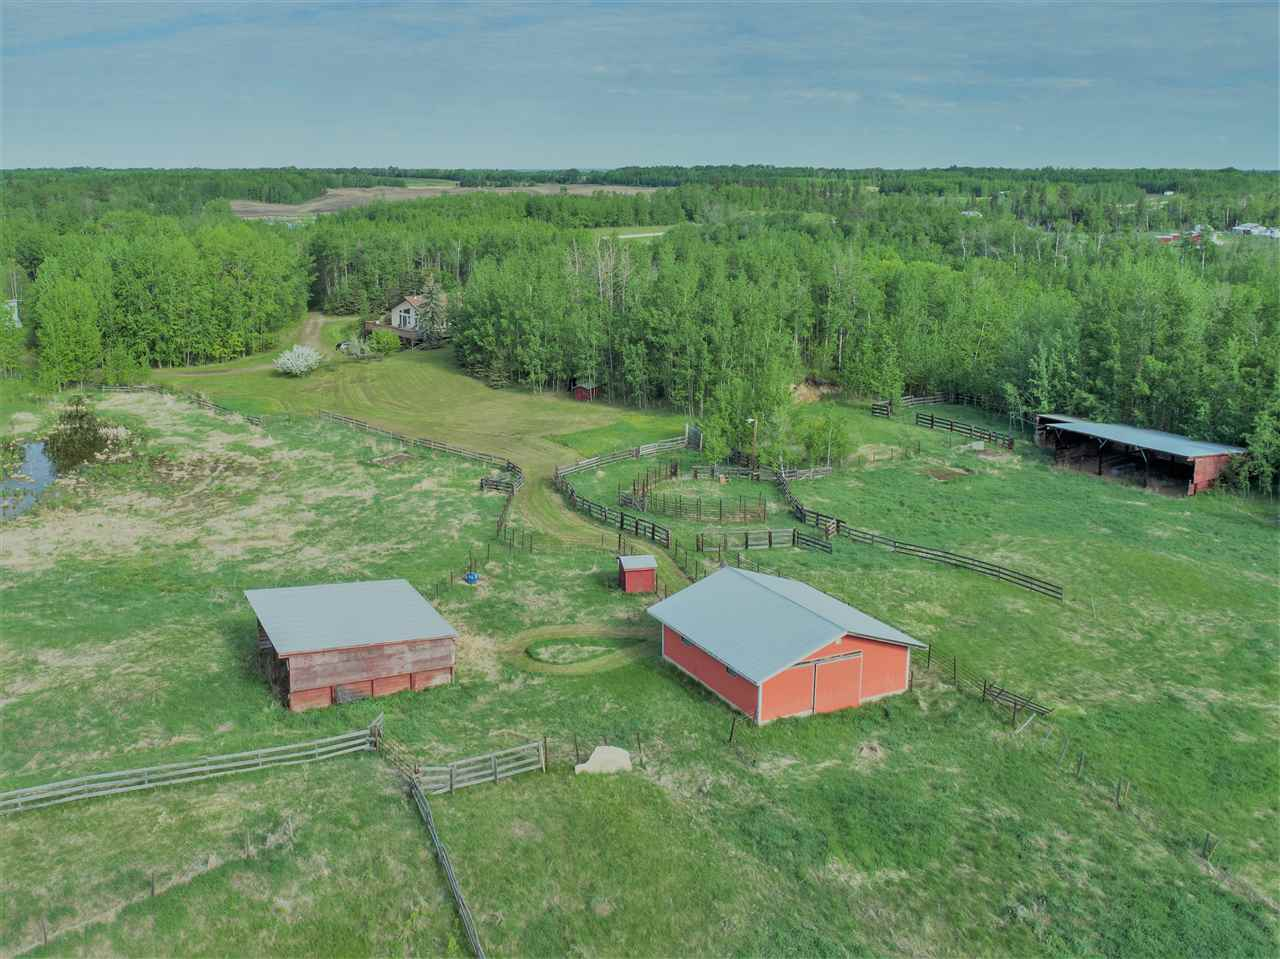 Photo 1: 54027 HWY 43: Rural Lac Ste. Anne County House for sale : MLS® # E4067908